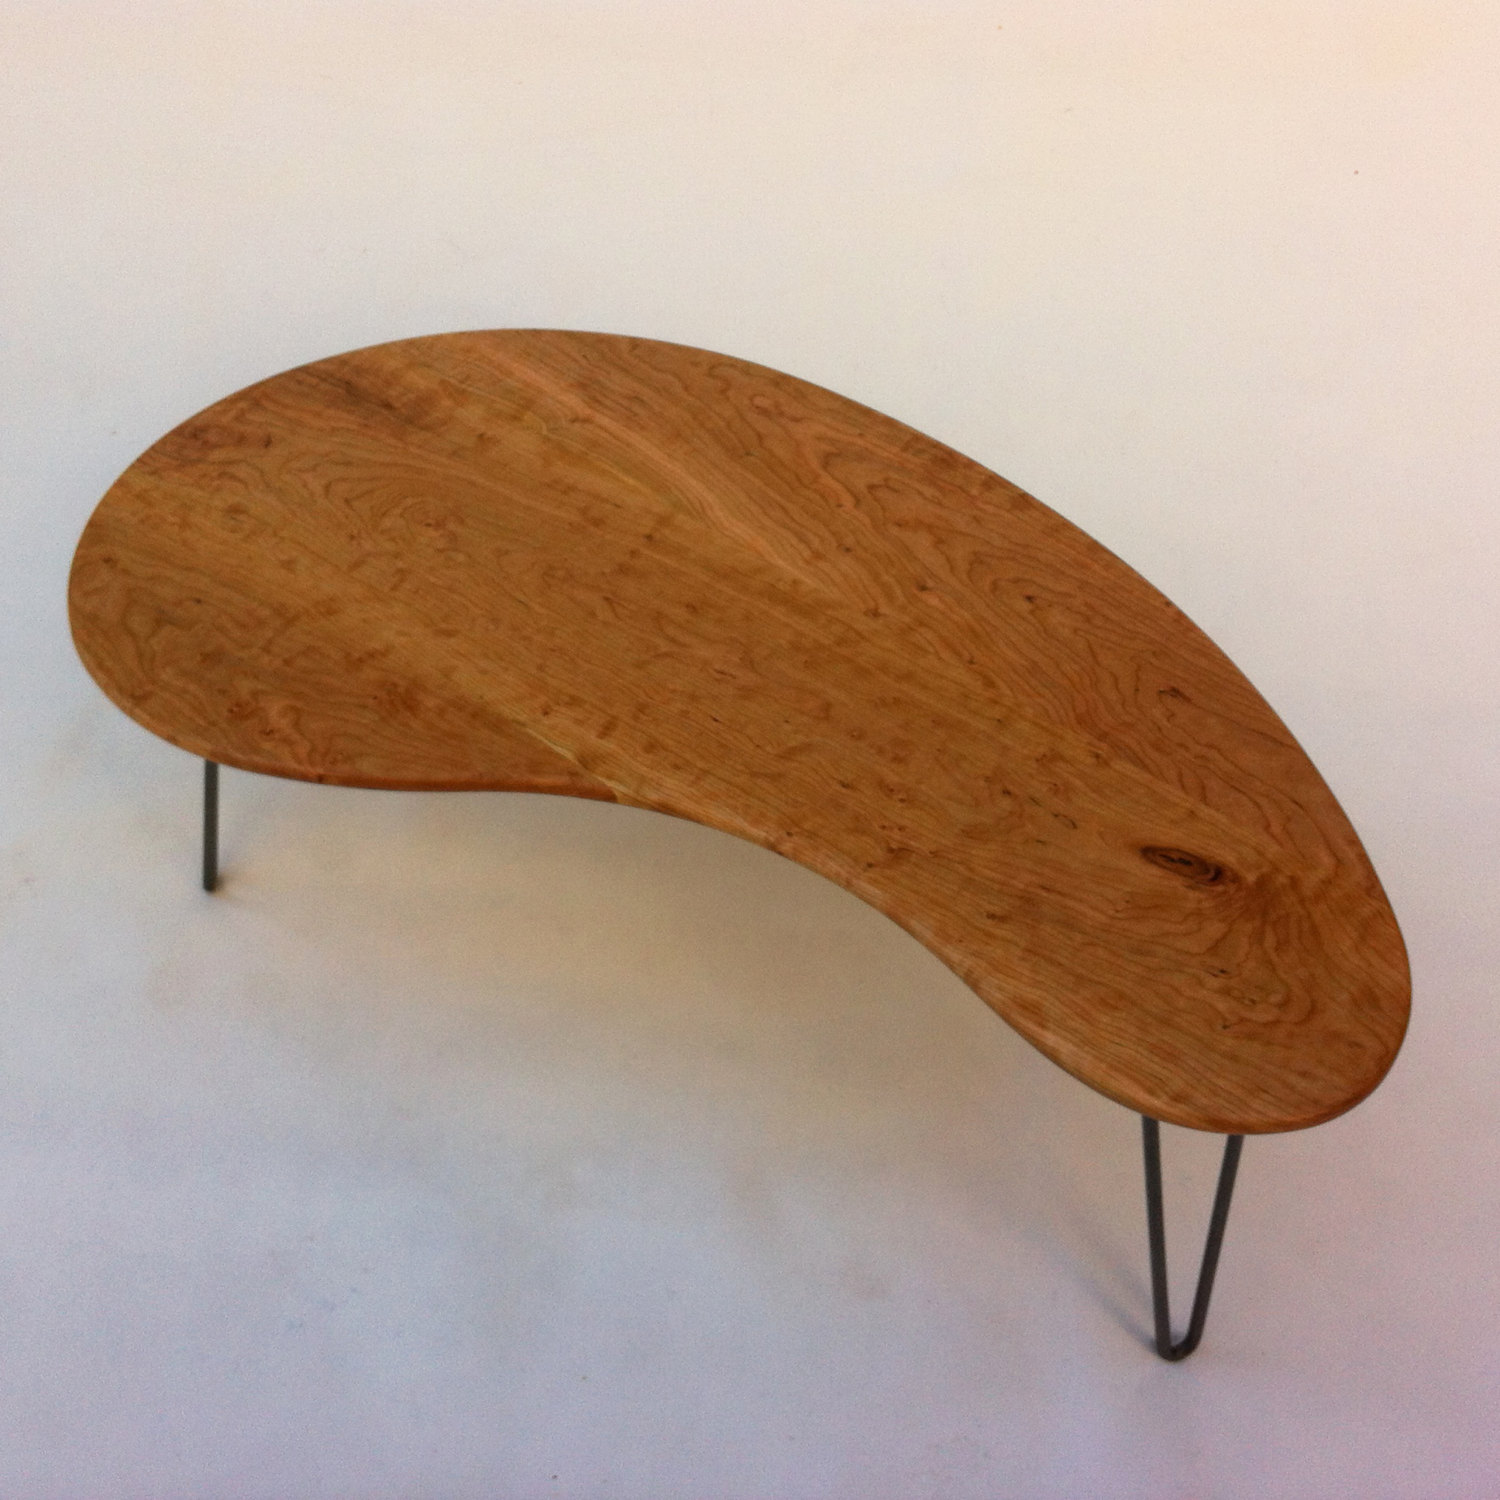 Mid century modern coffeecocktail table 43 kidney bean shaped mid century modern coffeecocktail table 43 kidney bean shaped solid cherry hardwood eames era biomorphic boomerang design geotapseo Choice Image